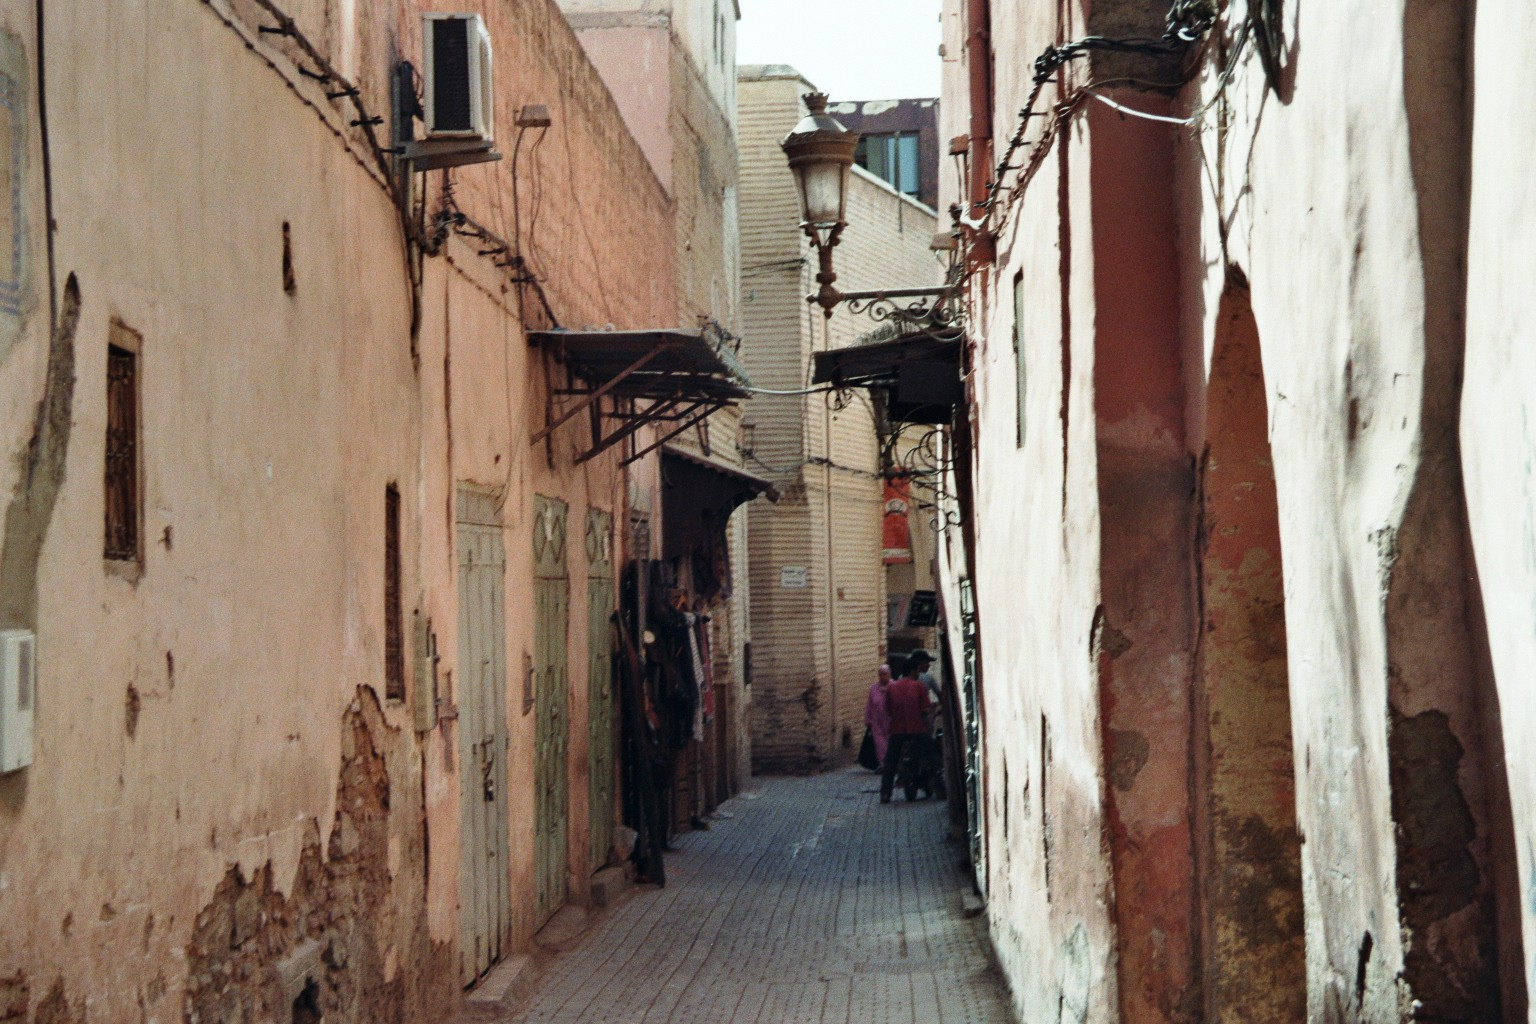 Gasse in Marrakesch 2